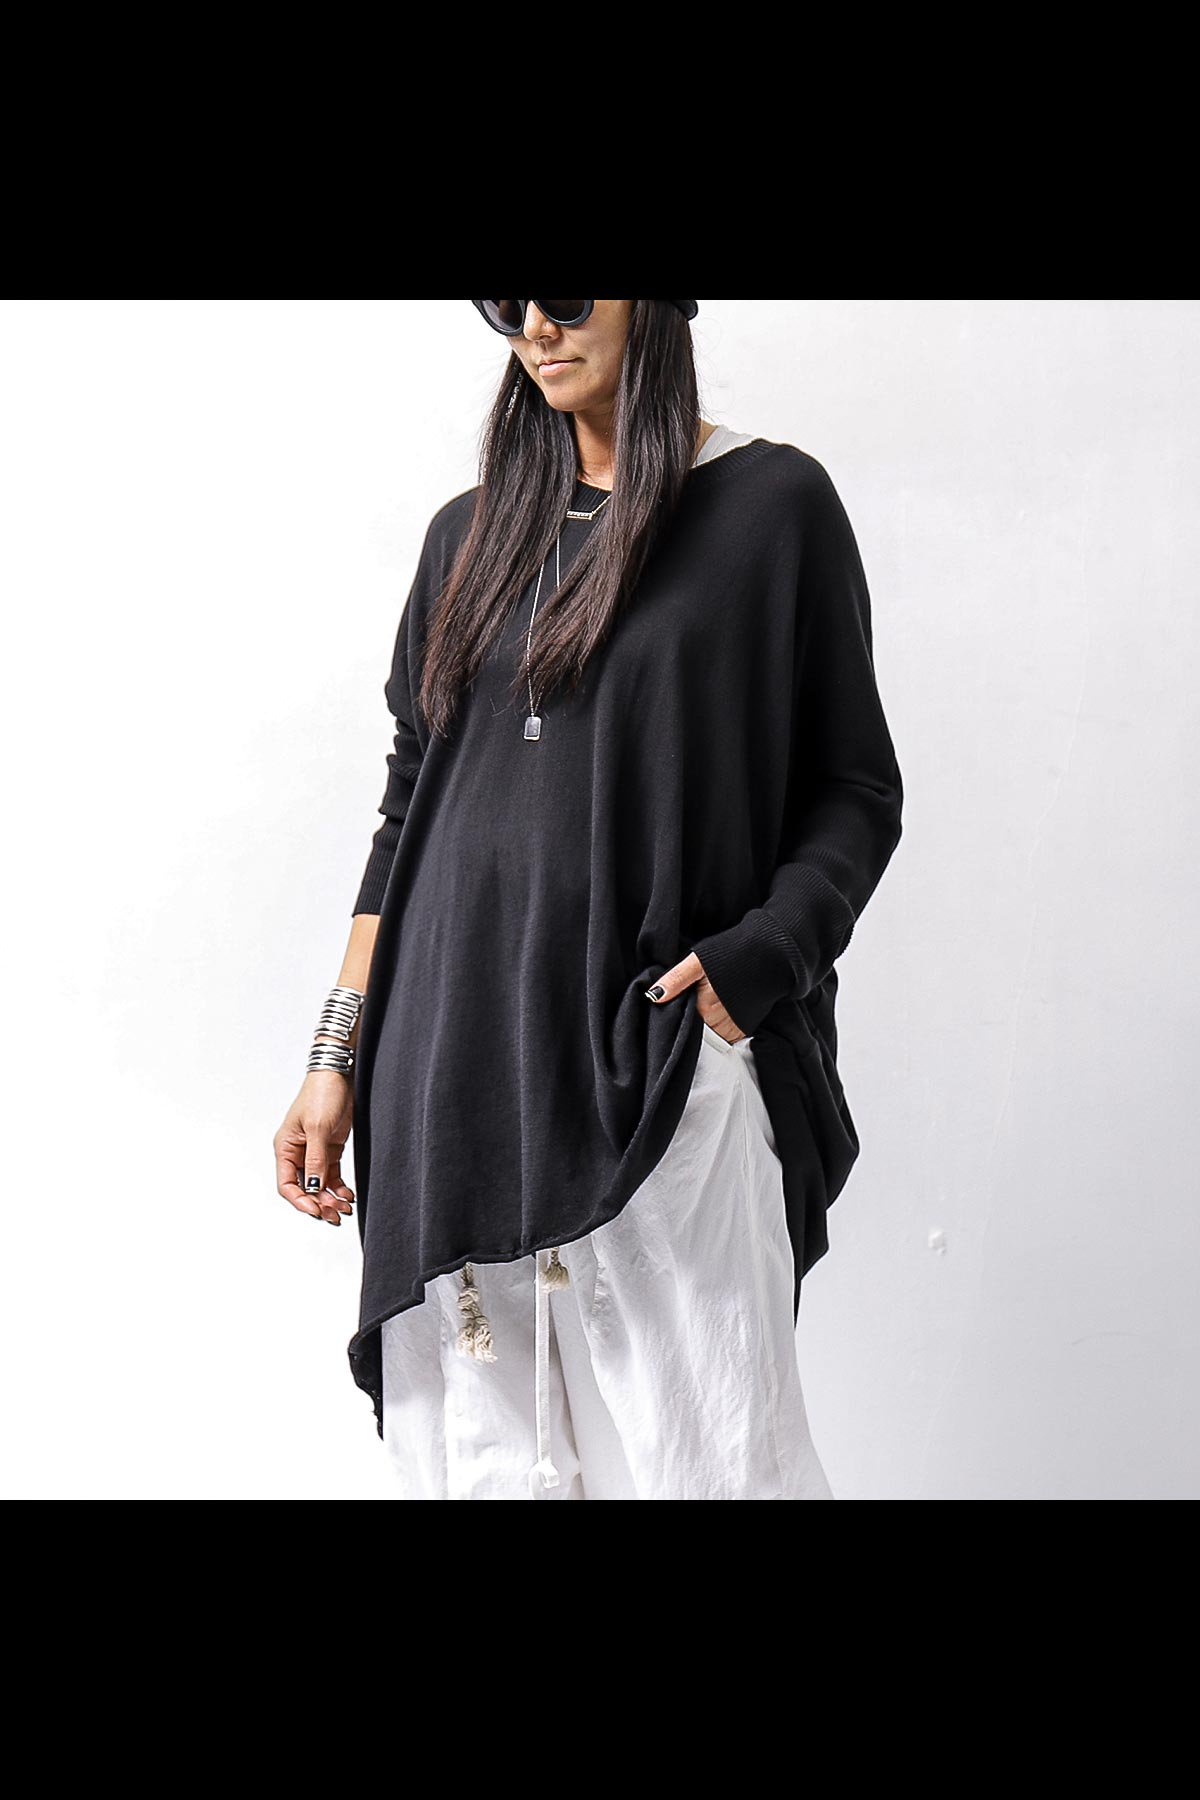 <img class='new_mark_img1' src='https://img.shop-pro.jp/img/new/icons8.gif' style='border:none;display:inline;margin:0px;padding:0px;width:auto;' />UNISEX OVERSIZED COCOON LONG TOPS VB1169/QM_BLACK